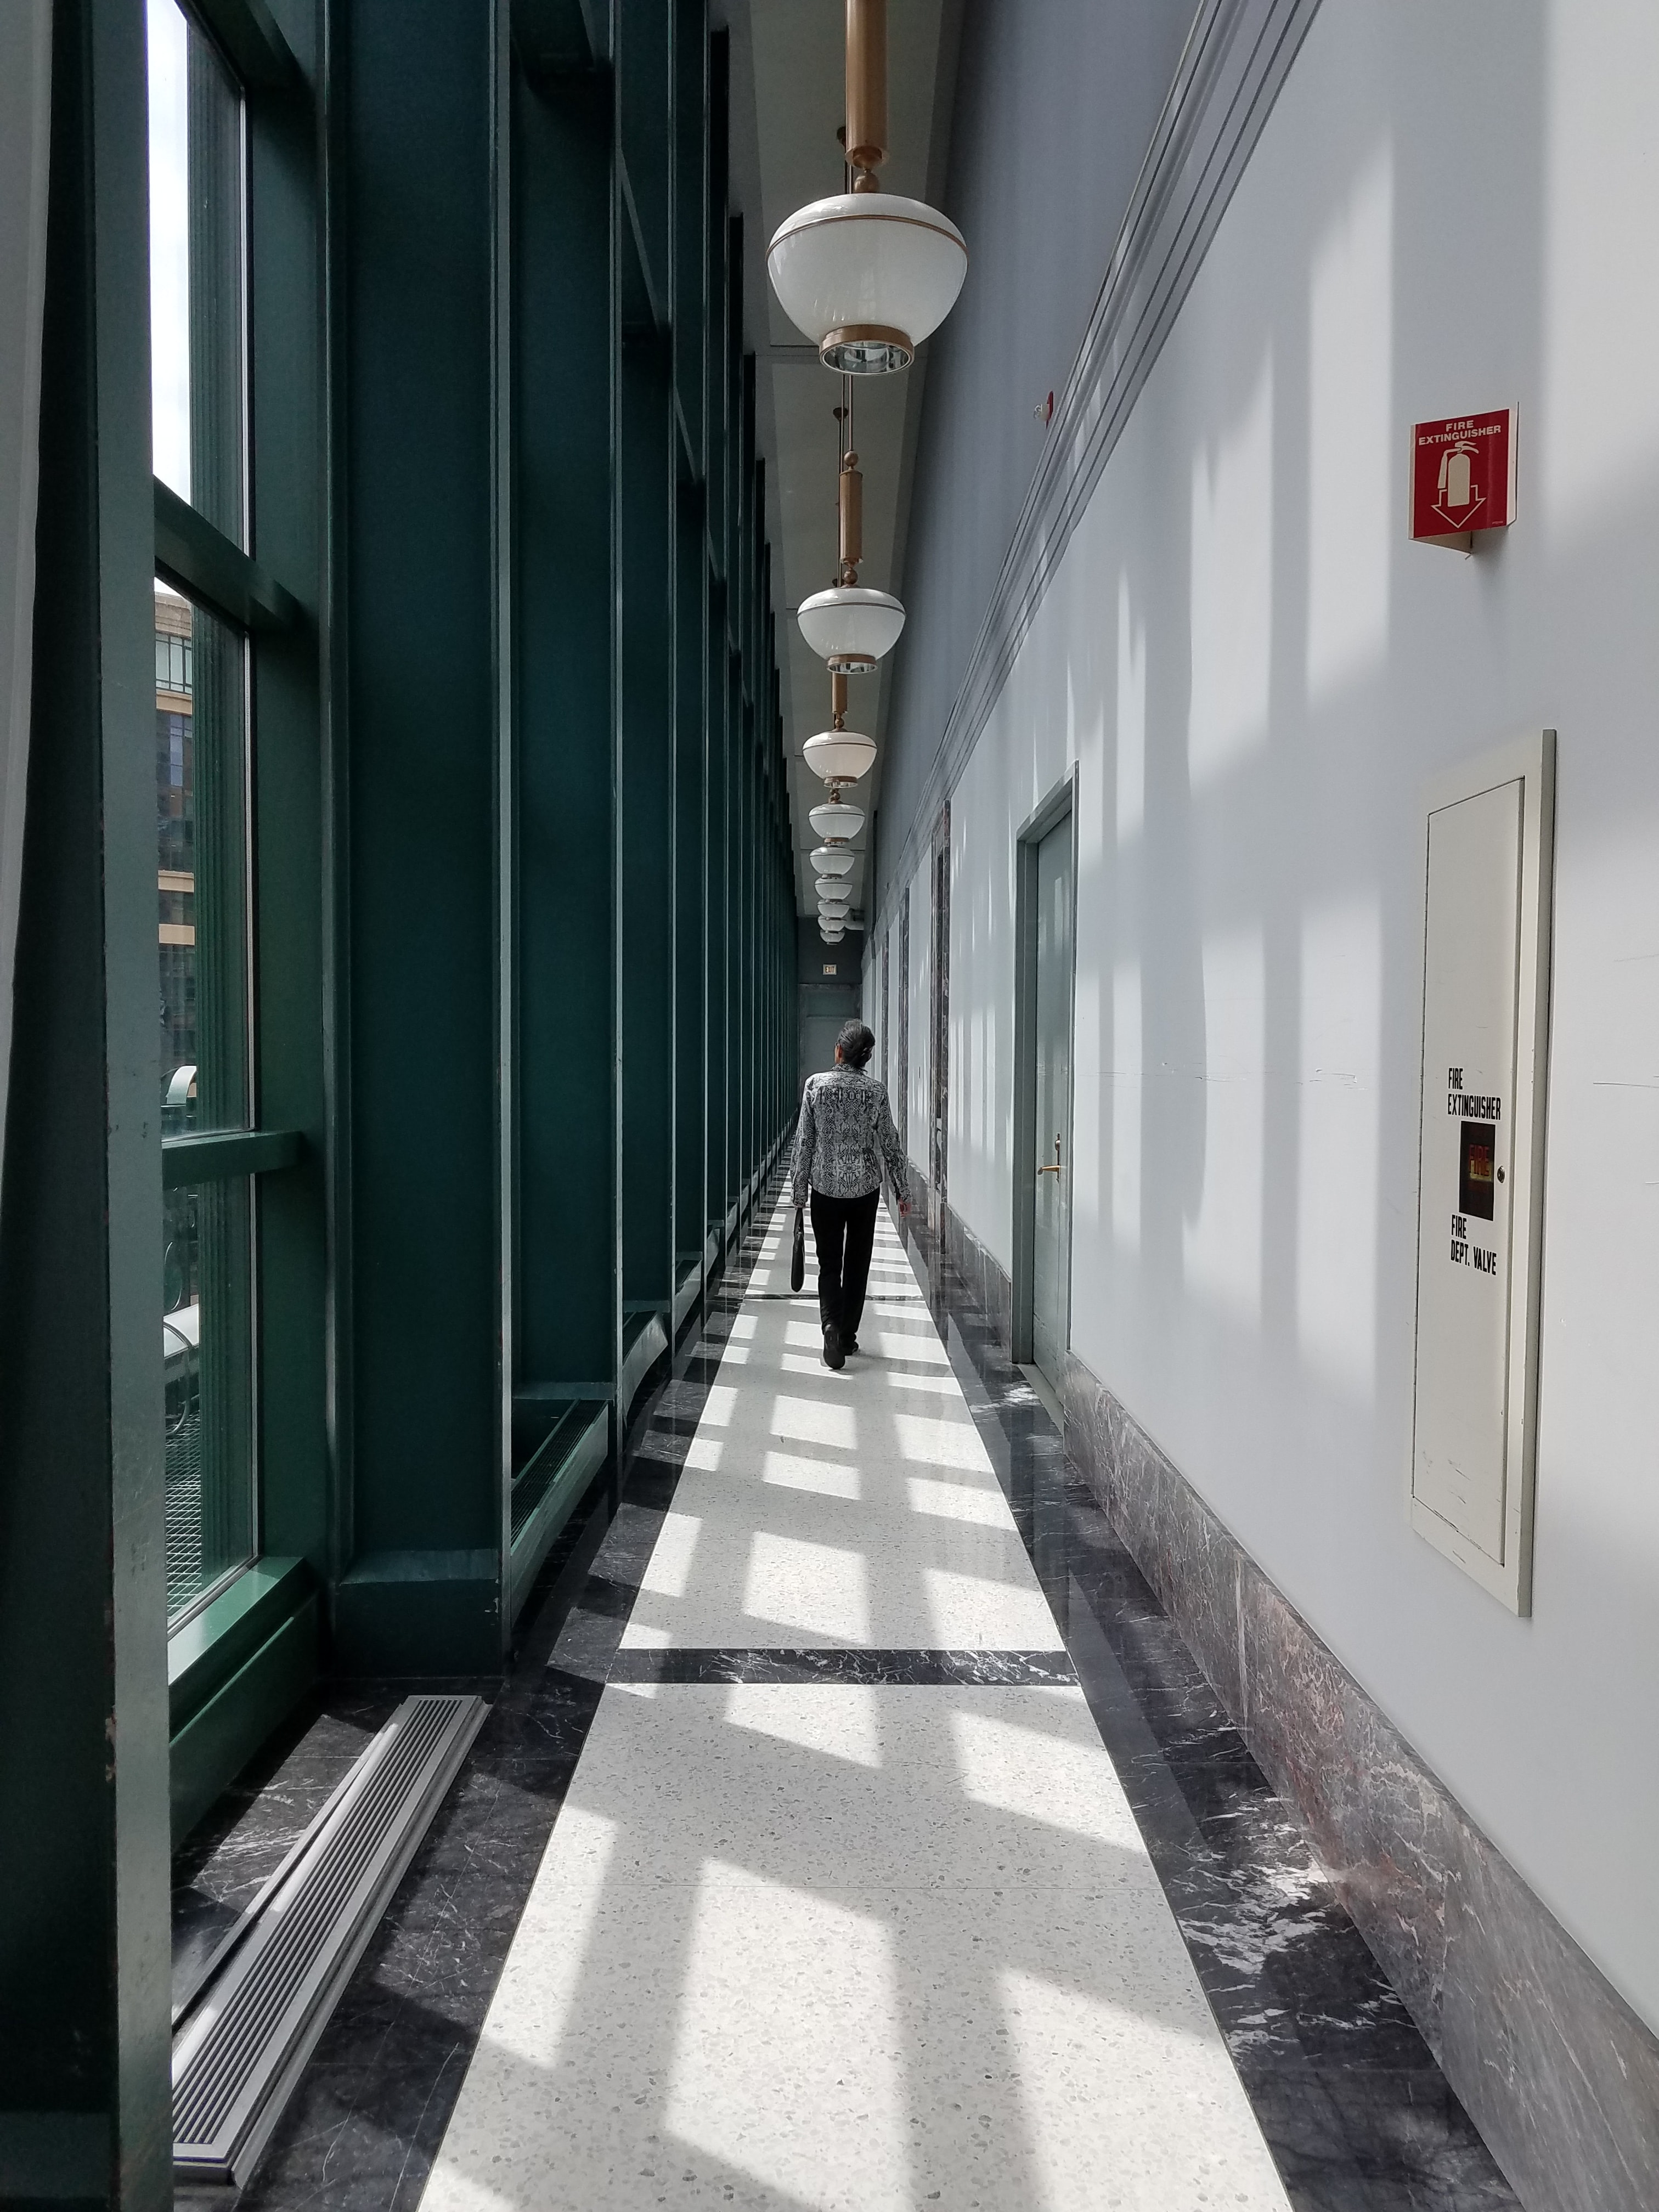 person walking on hallway with pendant lamps